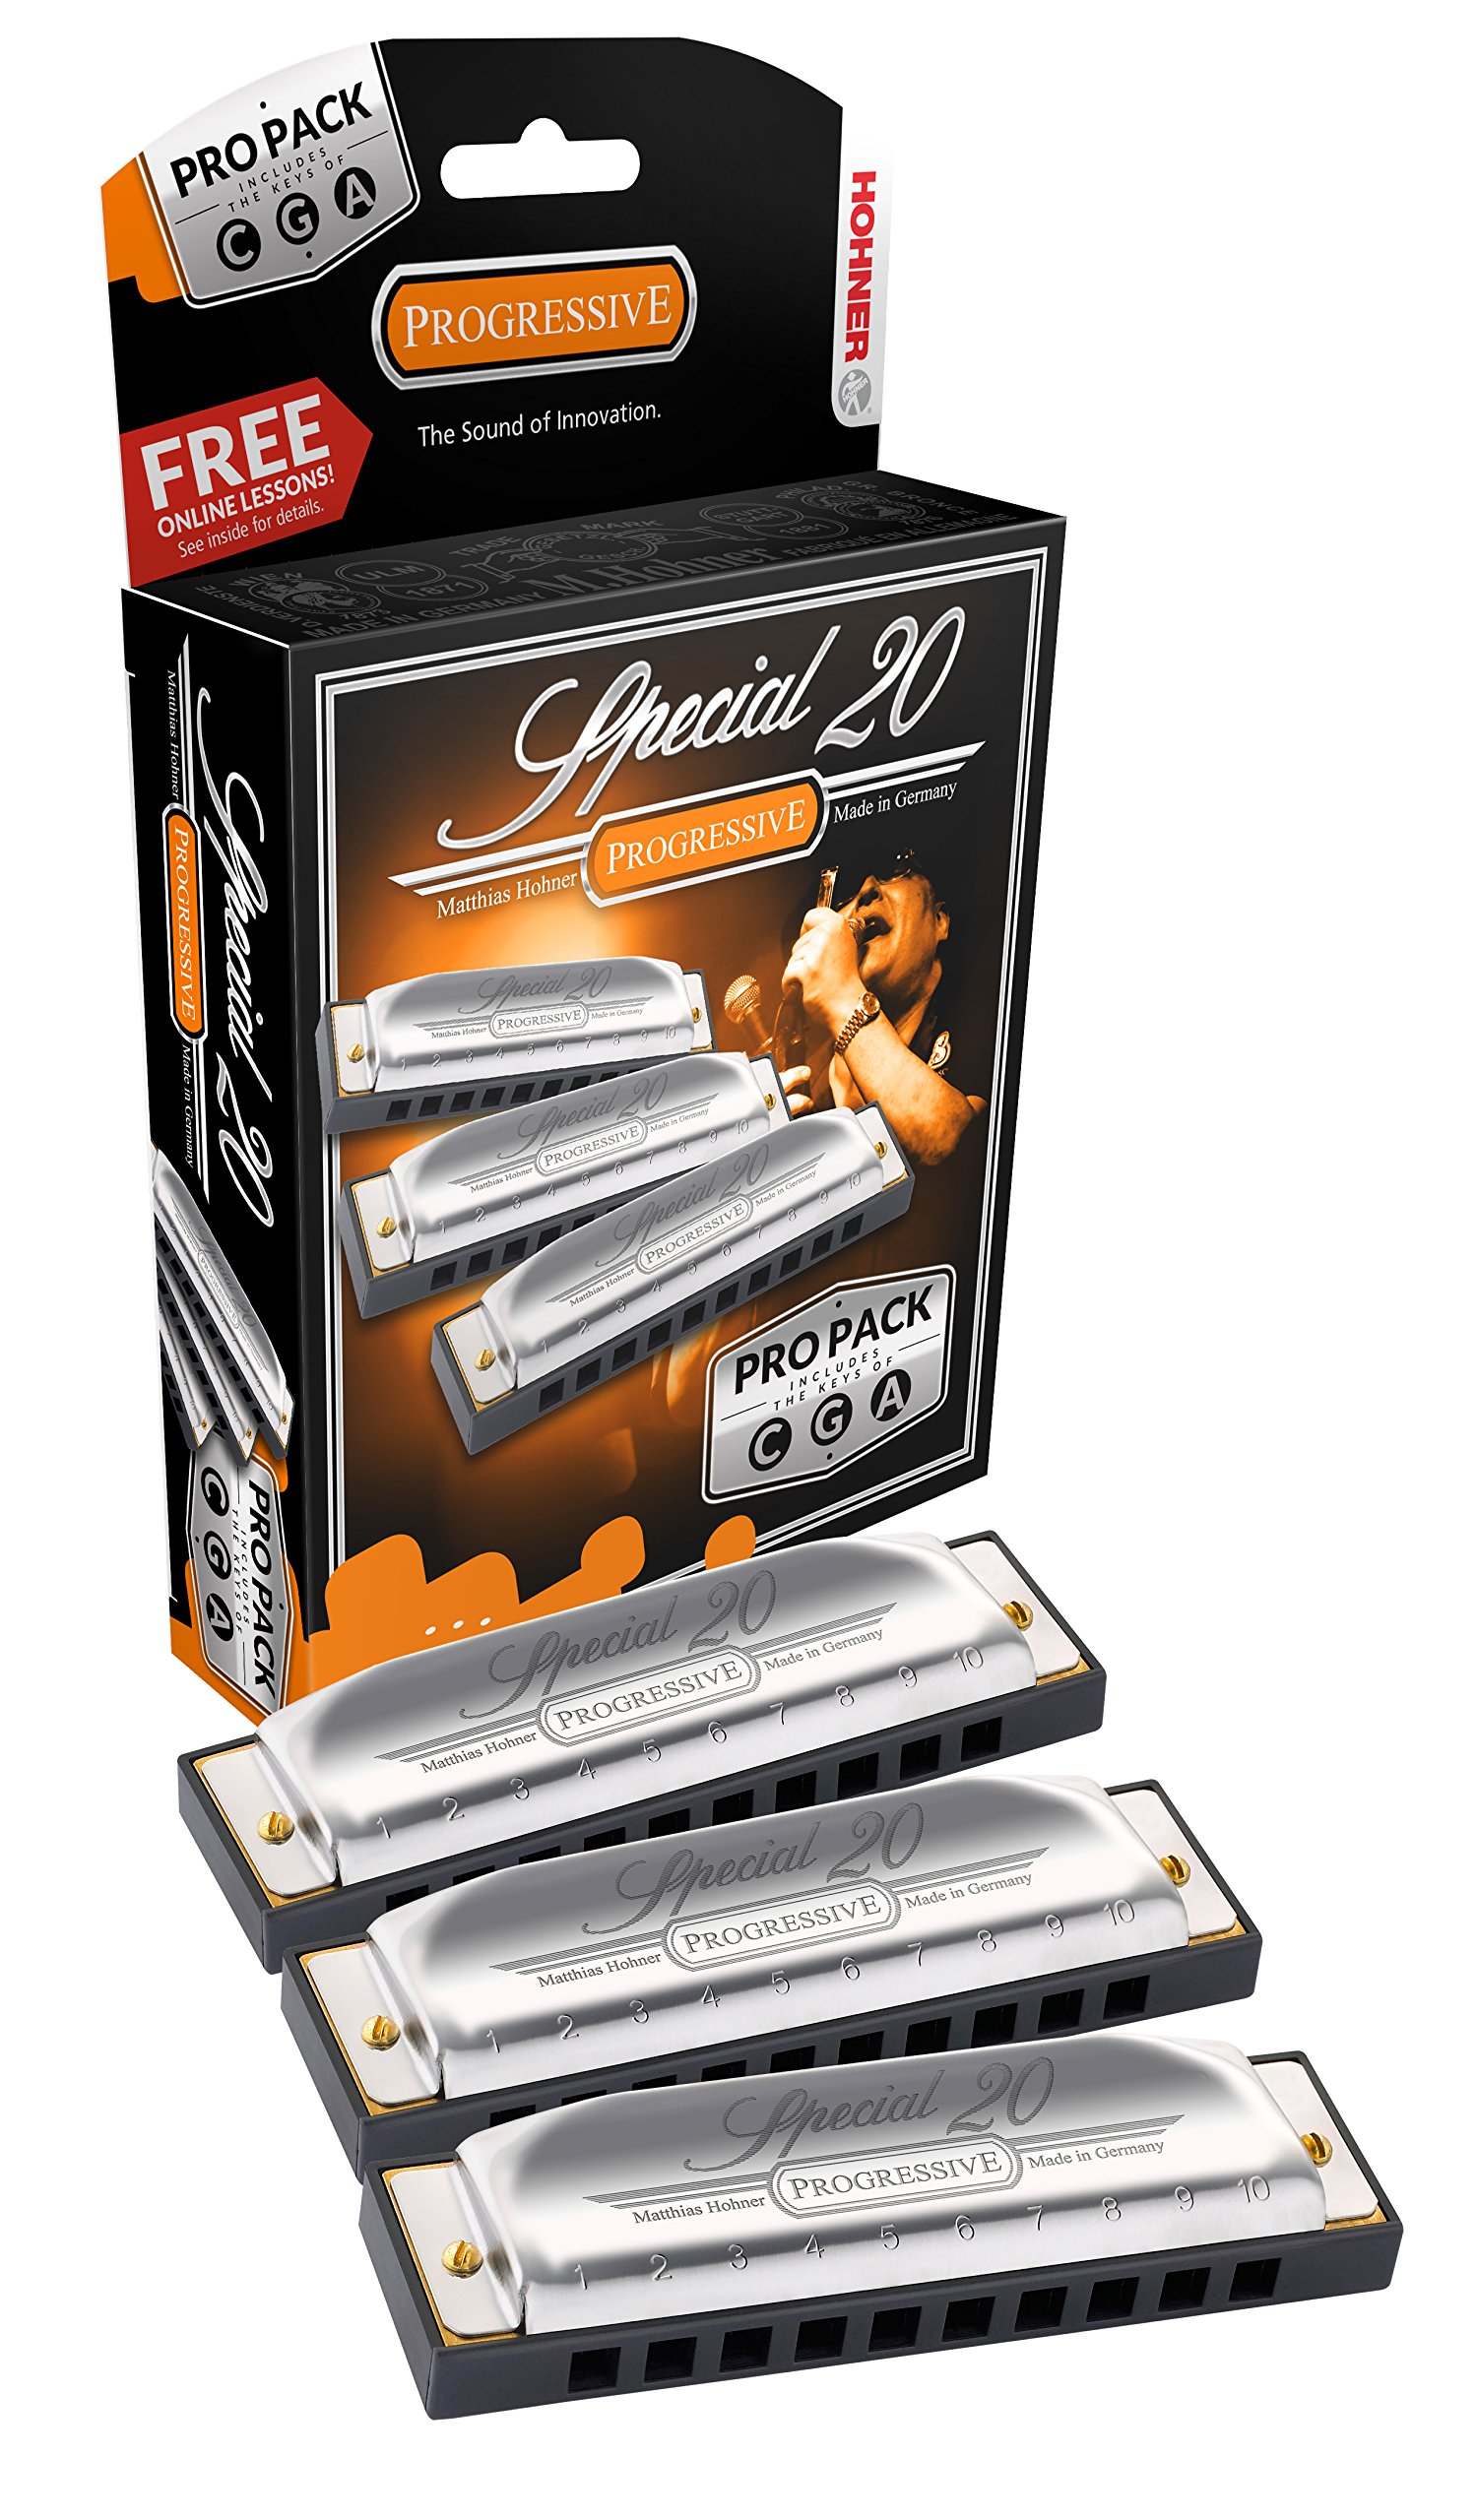 Hohner Special 20 Harmonica 3 piece Pro Pack keys of G,C,A by Hohner